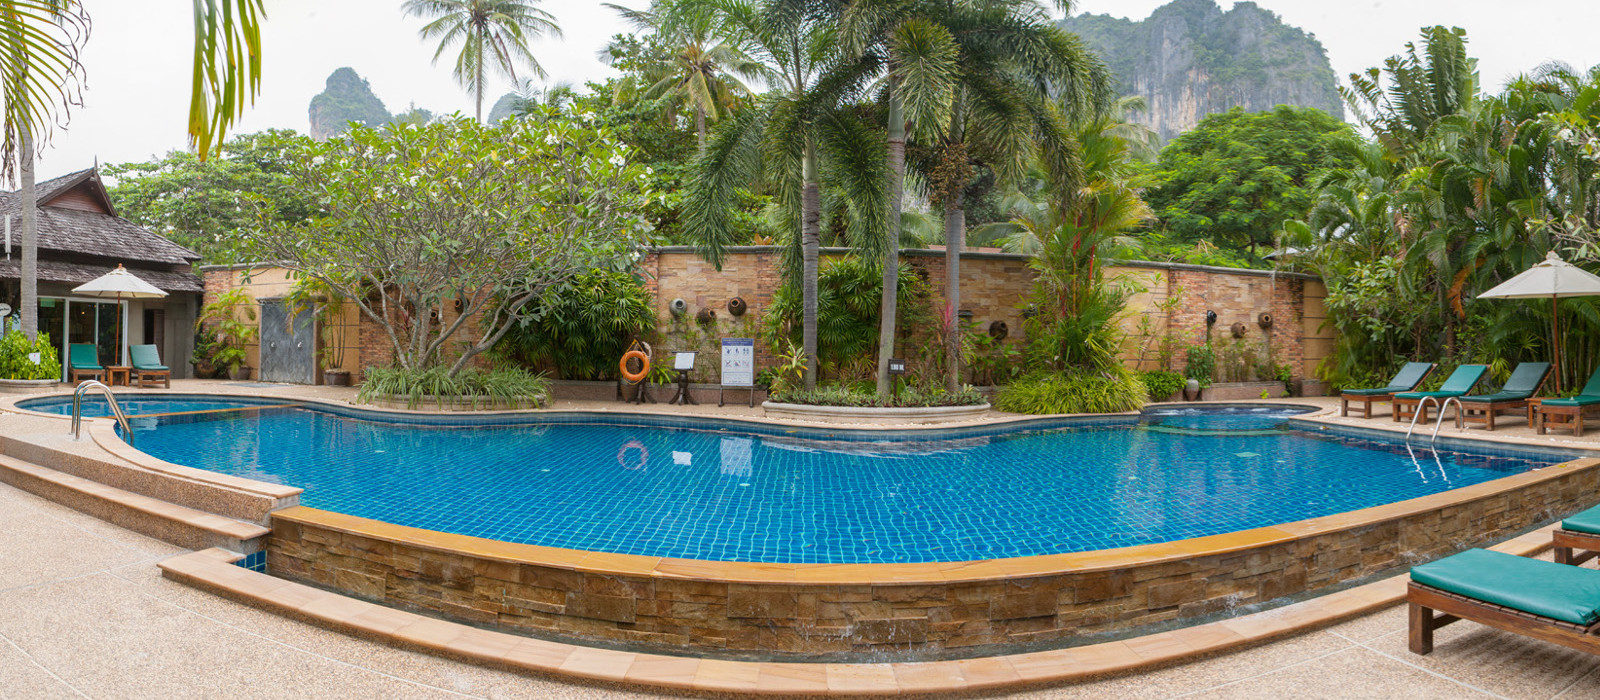 Hotel Railay Village Resort & Spa Thailand